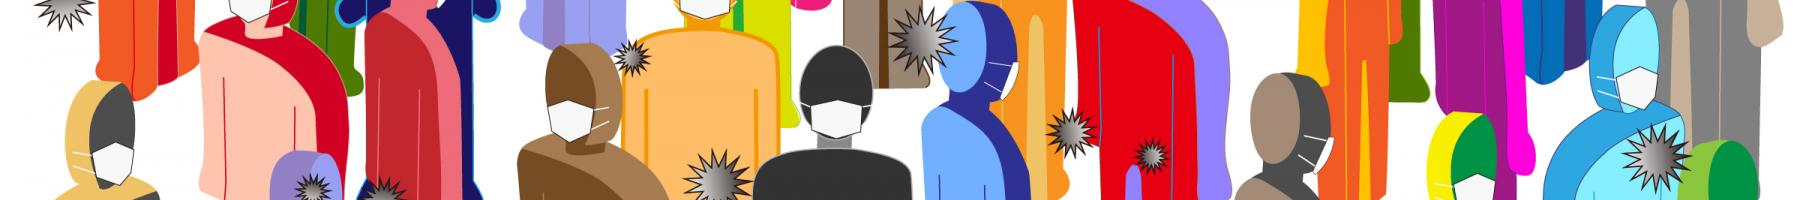 Illustration of a group of people wearing medical masks